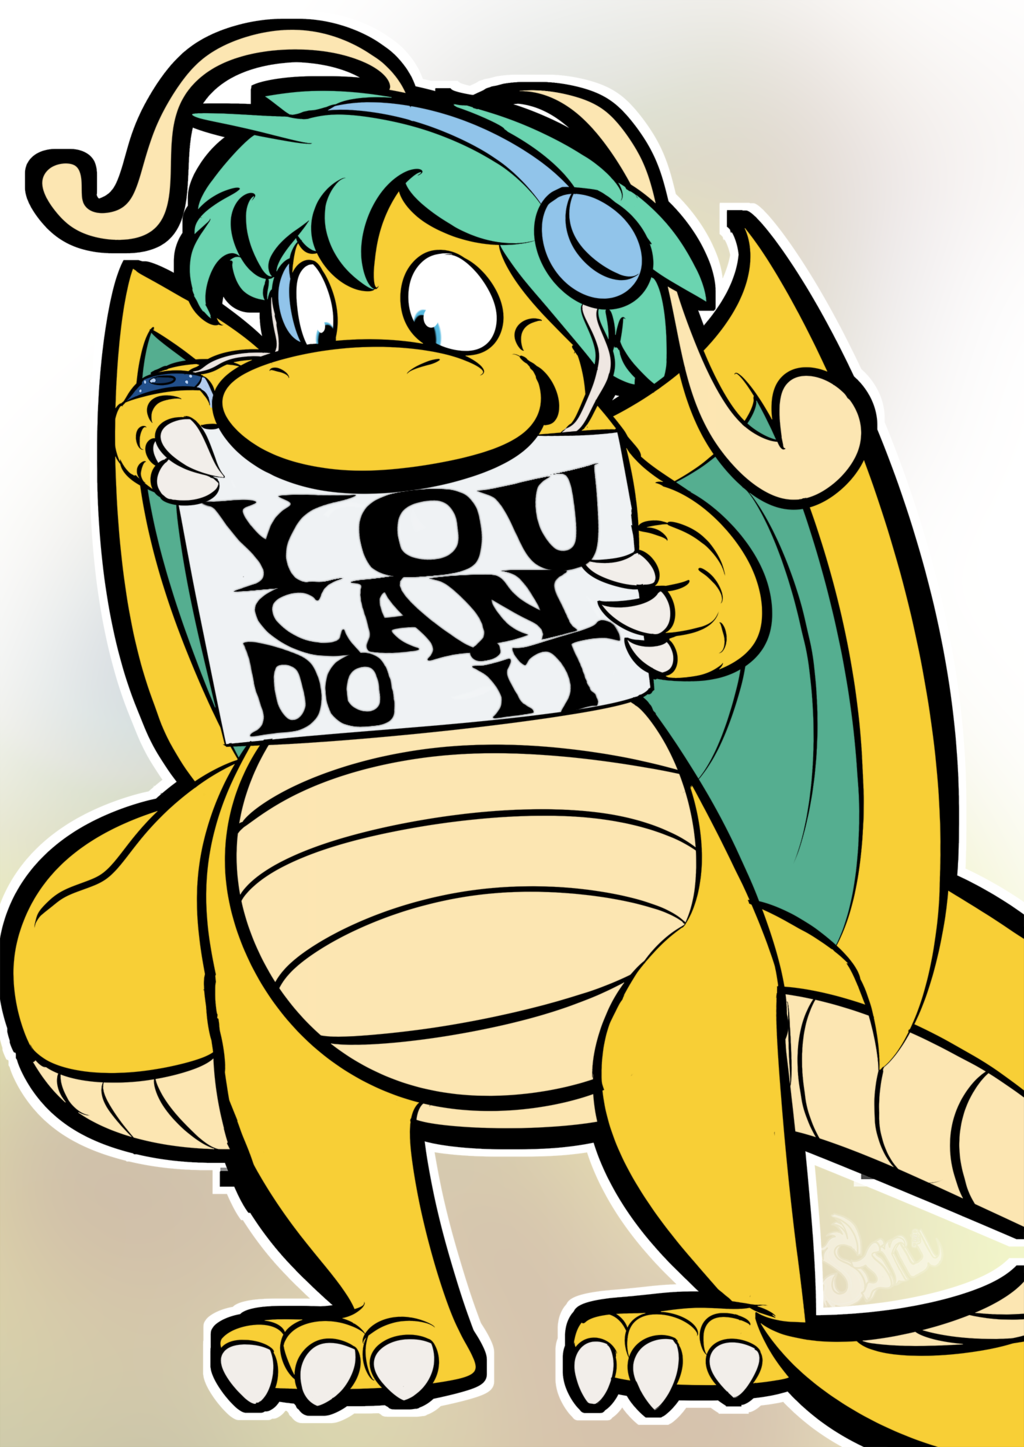 Most recent image: You can do it!